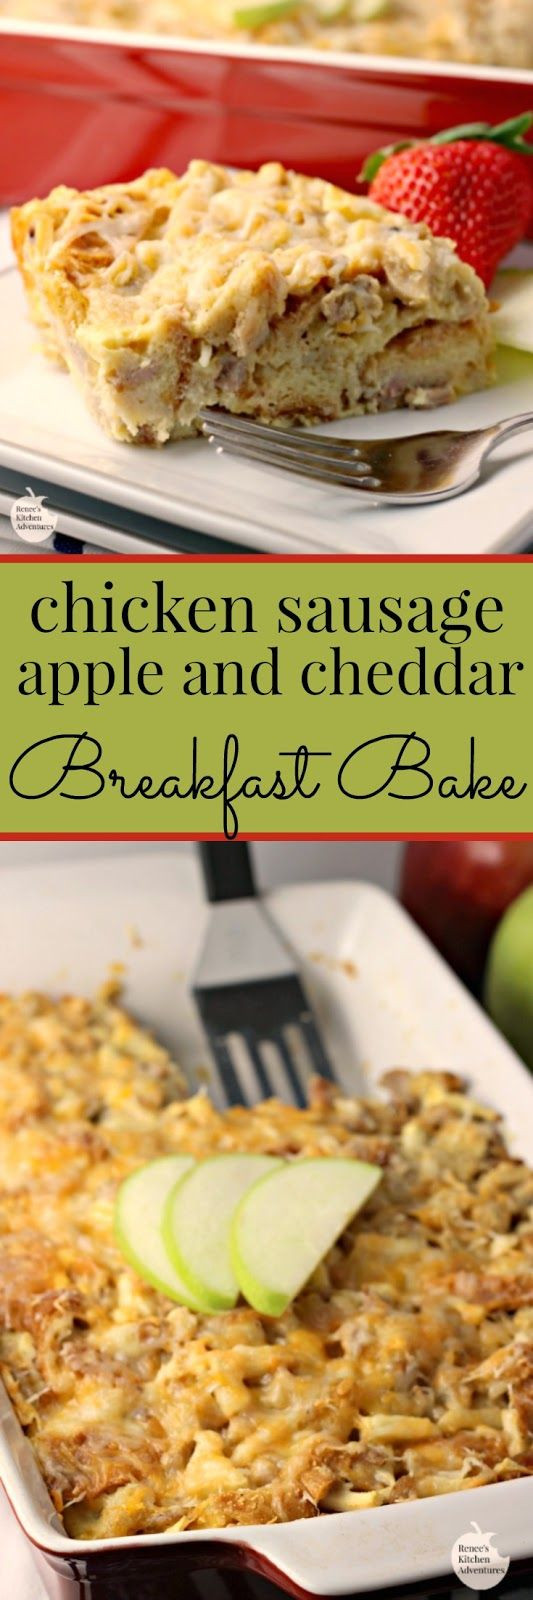 Chicken Breakfast Sausage Recipe  Chicken Sausage Apple and Cheddar Breakfast Bake